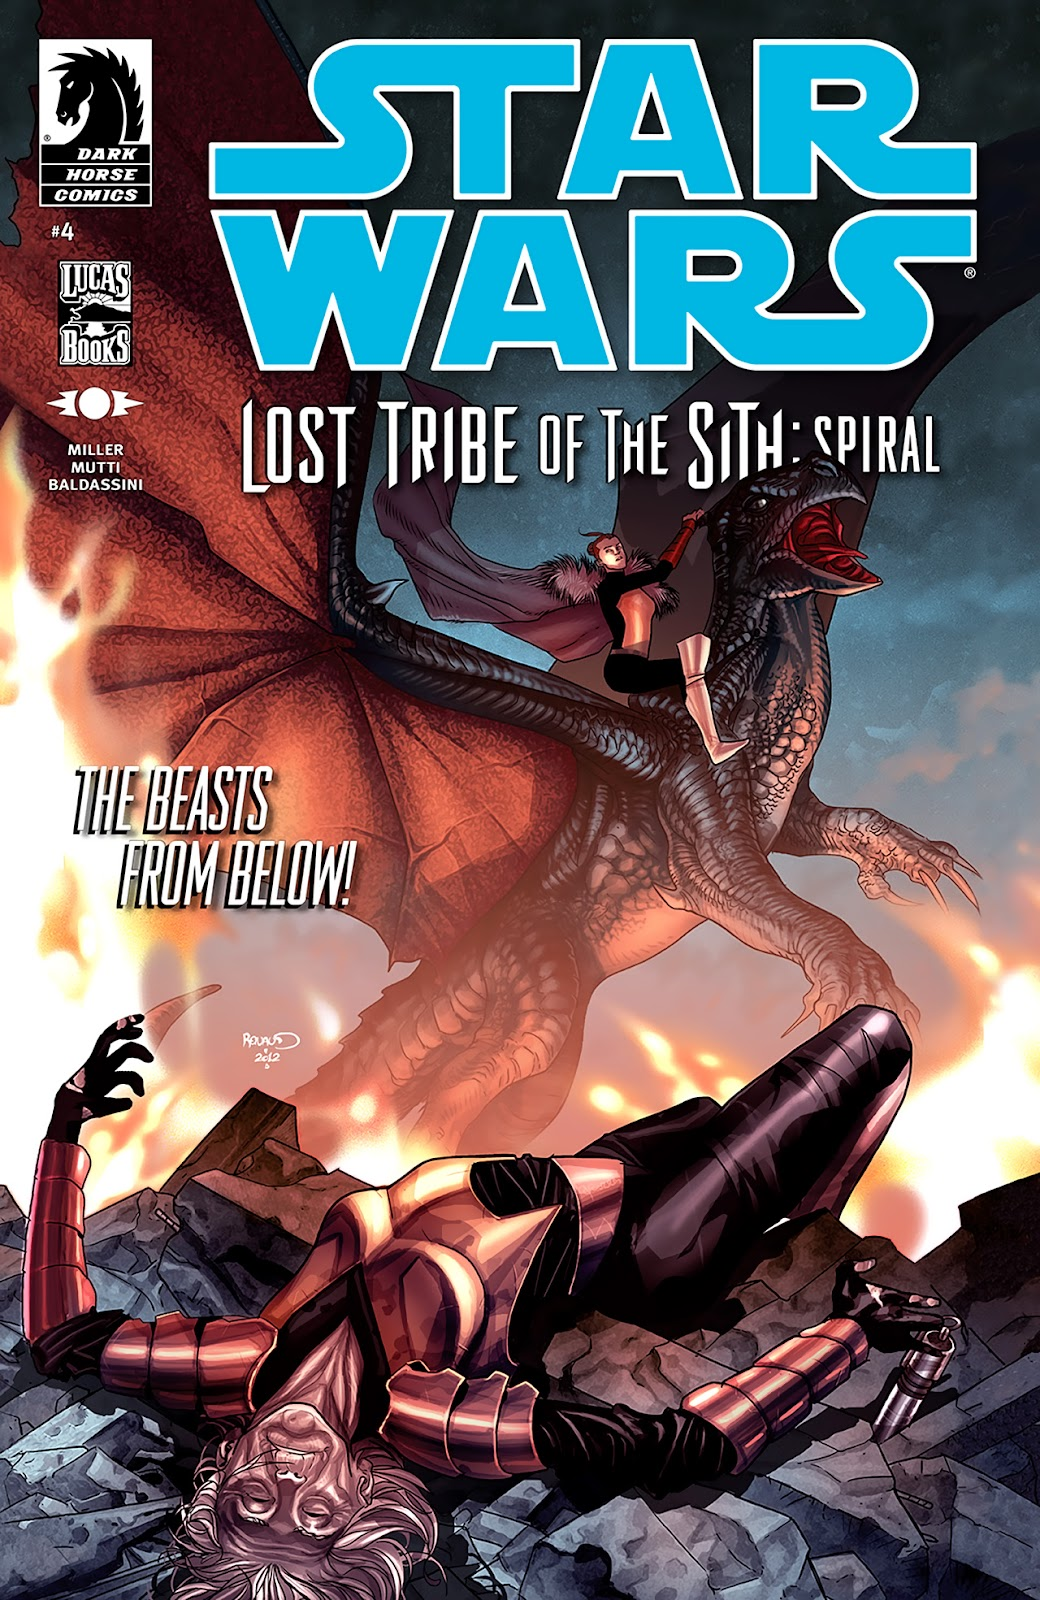 Star Wars: Lost Tribe of the Sith - Spiral 4 Page 1